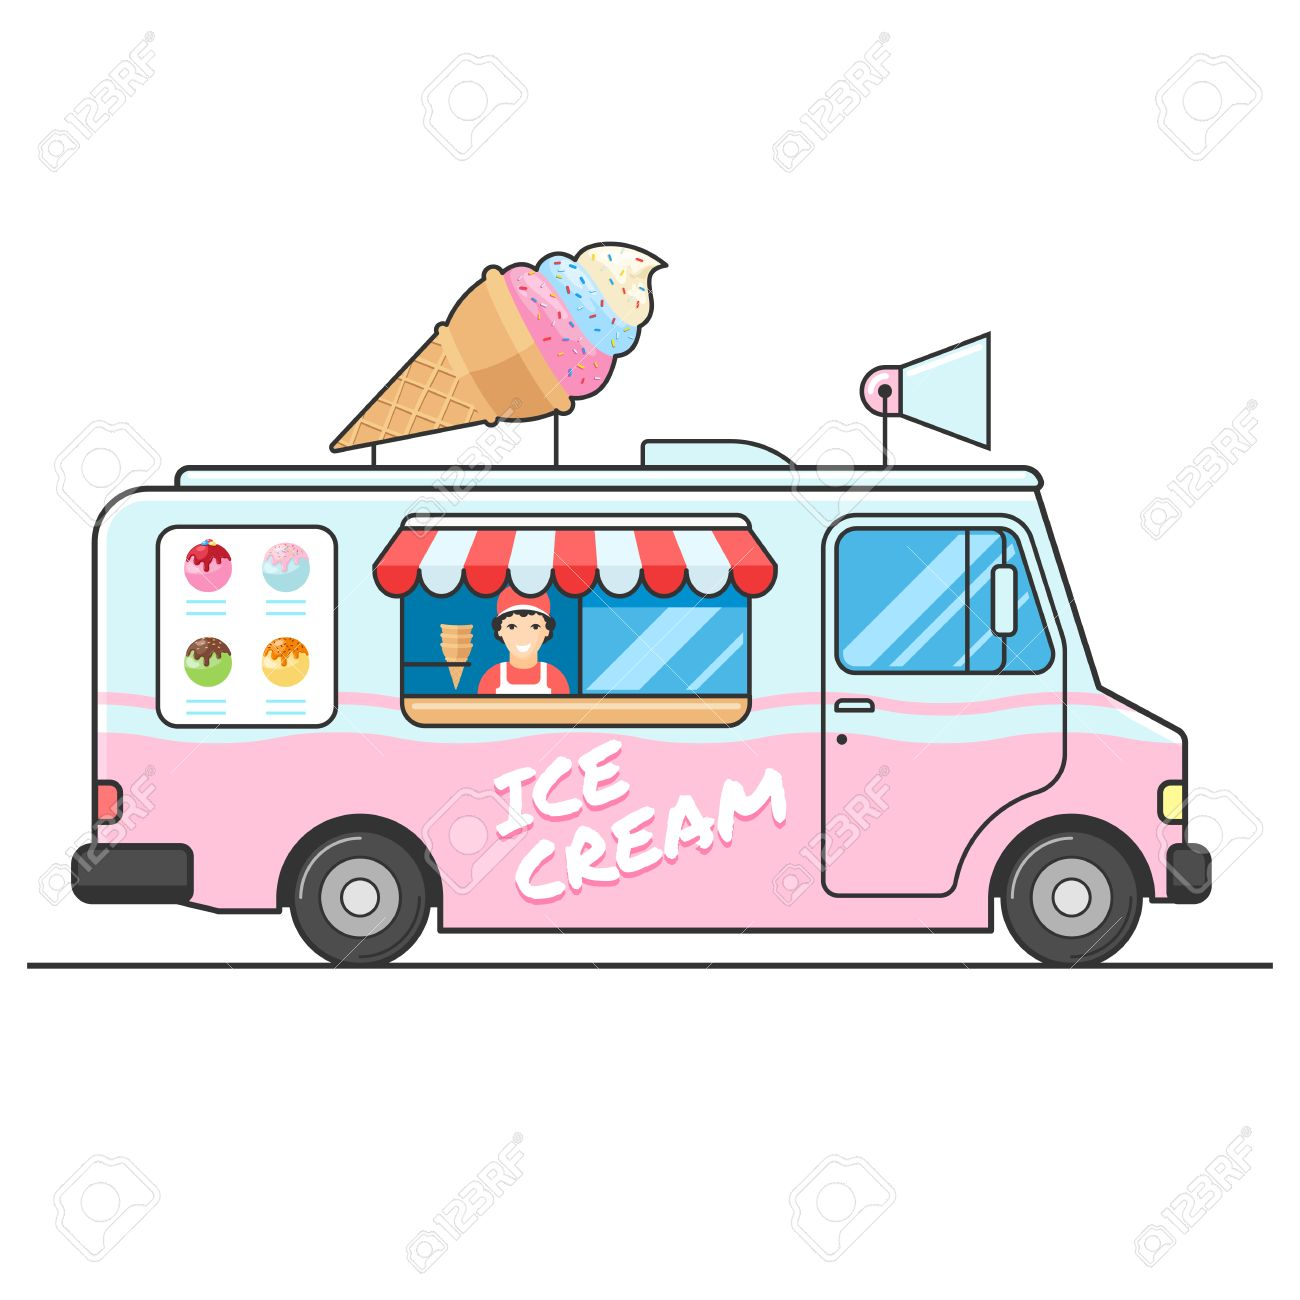 Ice cream truck, side view. Seller of ice cream in the van. Ice...